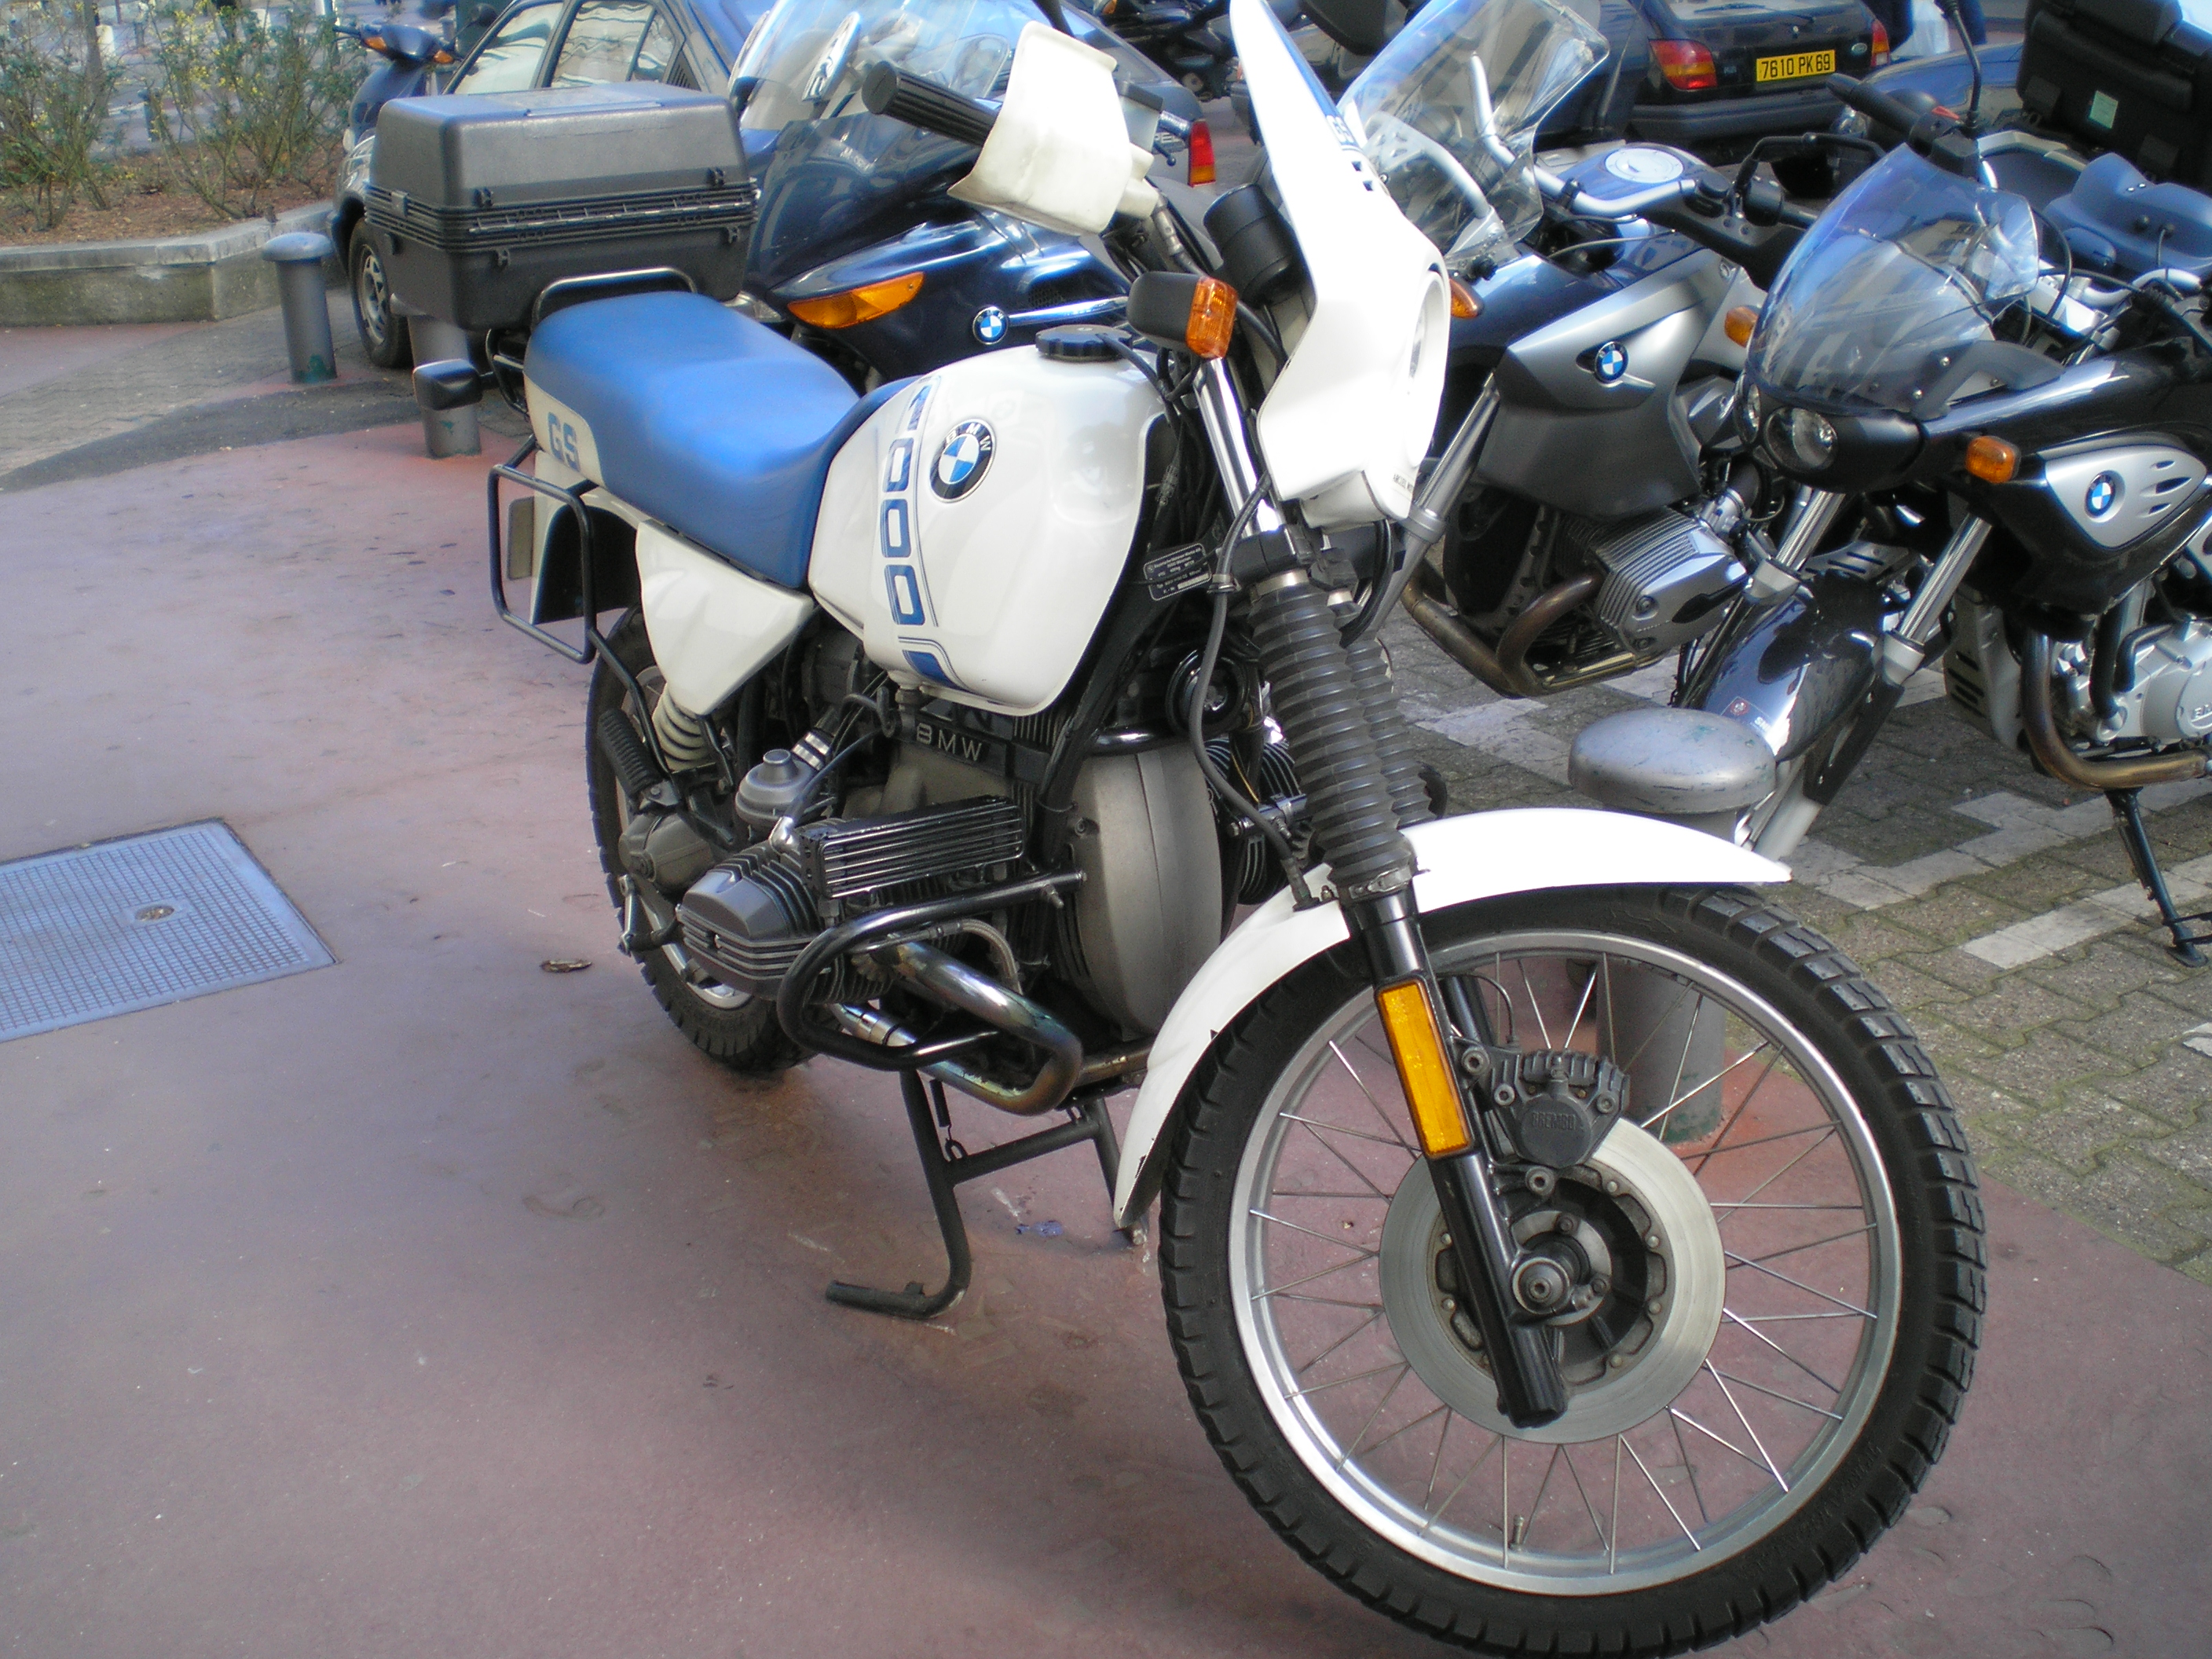 BMW R80GS 1995 images #6405